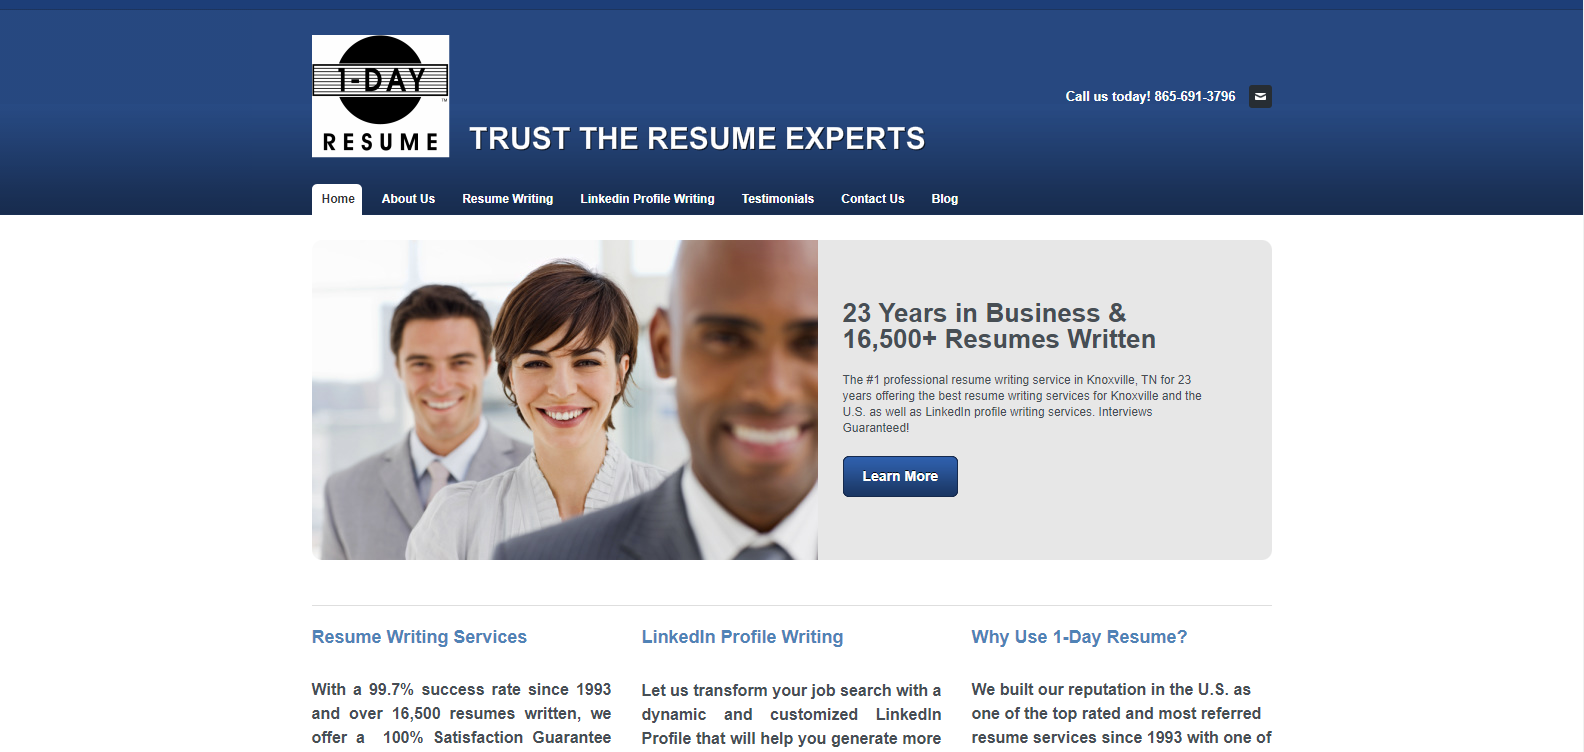 10 Best Military Resume Writing Services in 2021 – Screenshot of 1-Day Resume Homepage